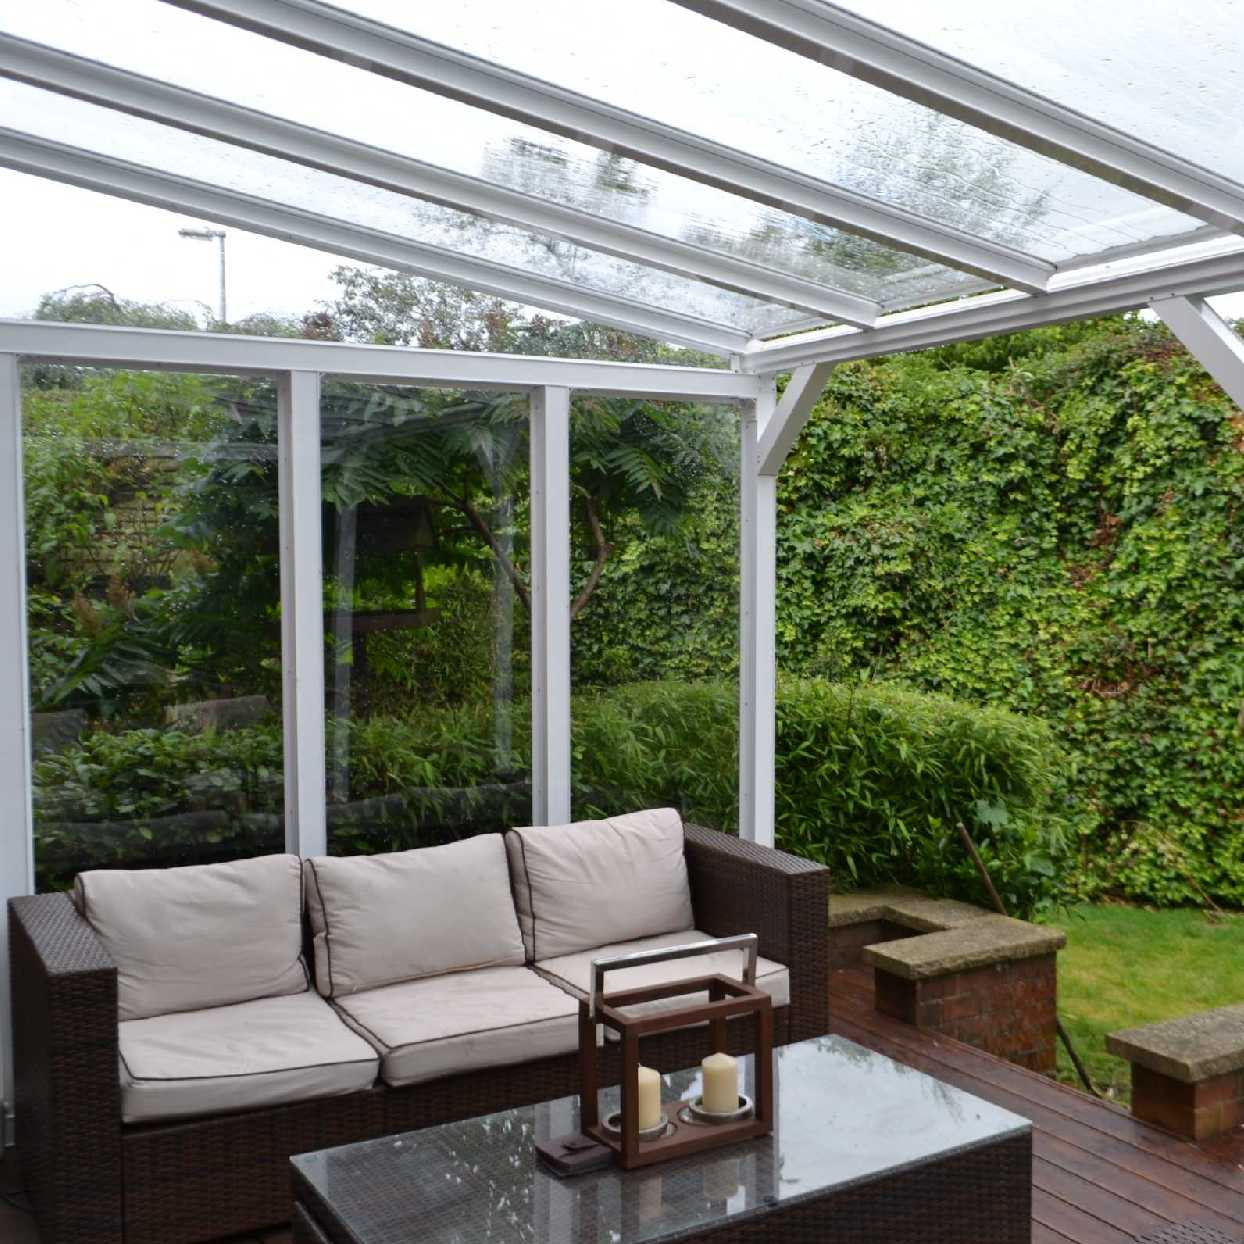 Omega Smart White Lean-To Canopy with 6mm Glass Clear Plate Polycarbonate Glazing - 8.4m (W) x 3.0m (P), (4) Supporting Posts